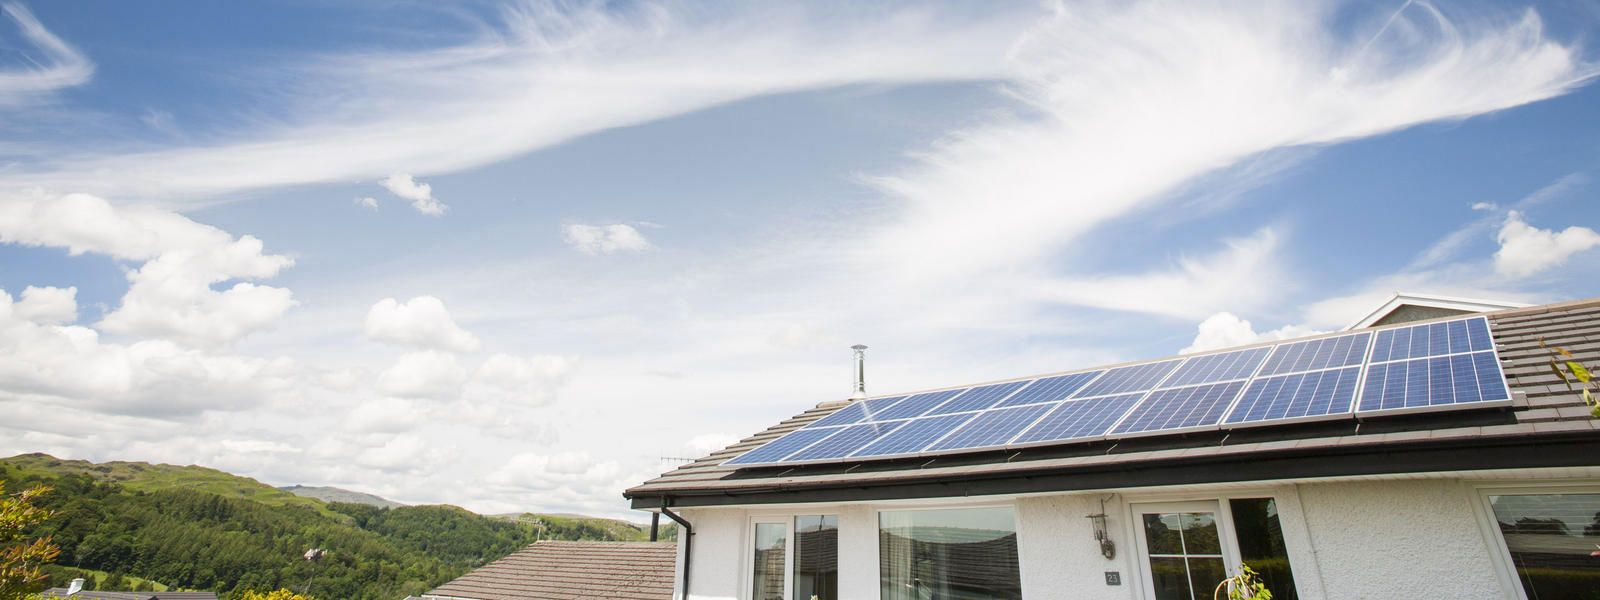 Getting Solar Is Easy Solar Panel Prices Have Dropped 80 Percent Since 2008 Solar Energy Solar Energy Diy Solar Panels